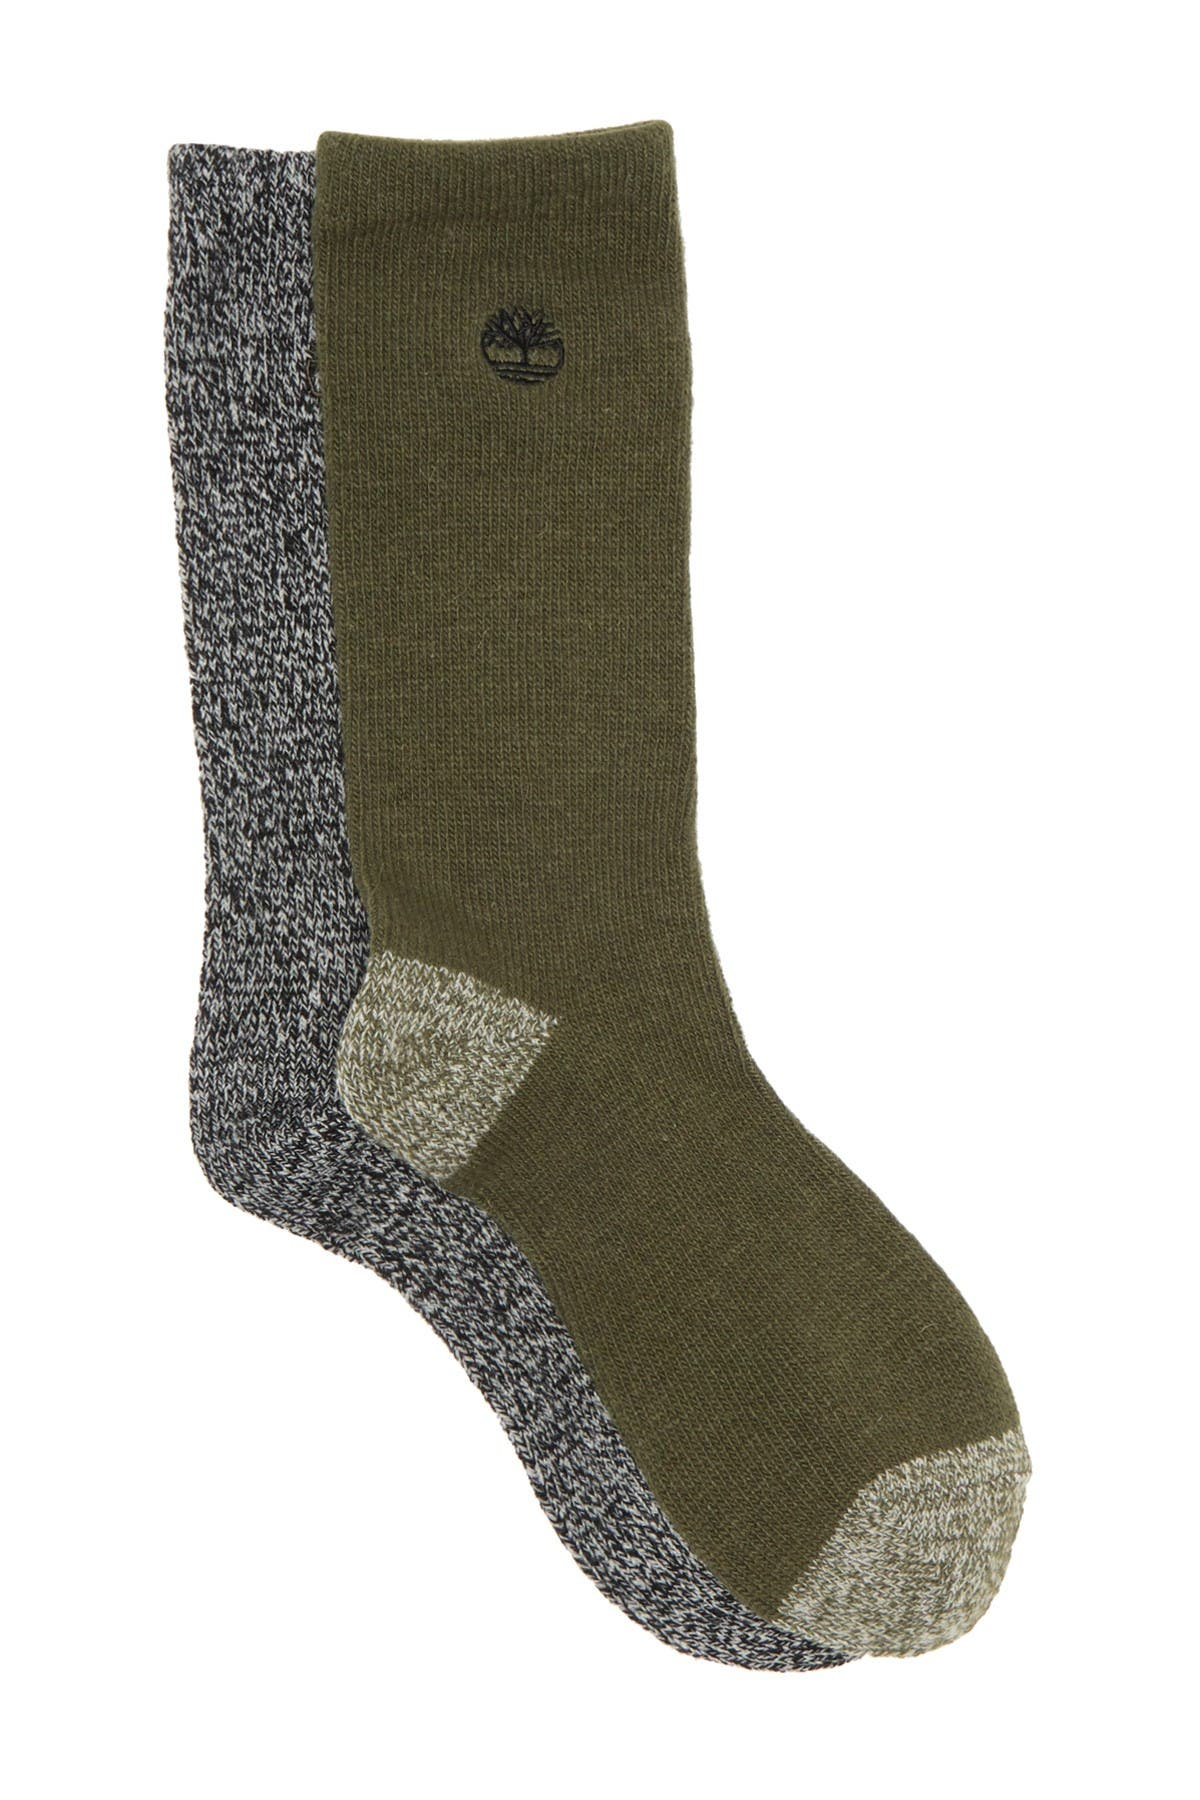 Image of Timberland Marled Boot Socks - Pack of 2